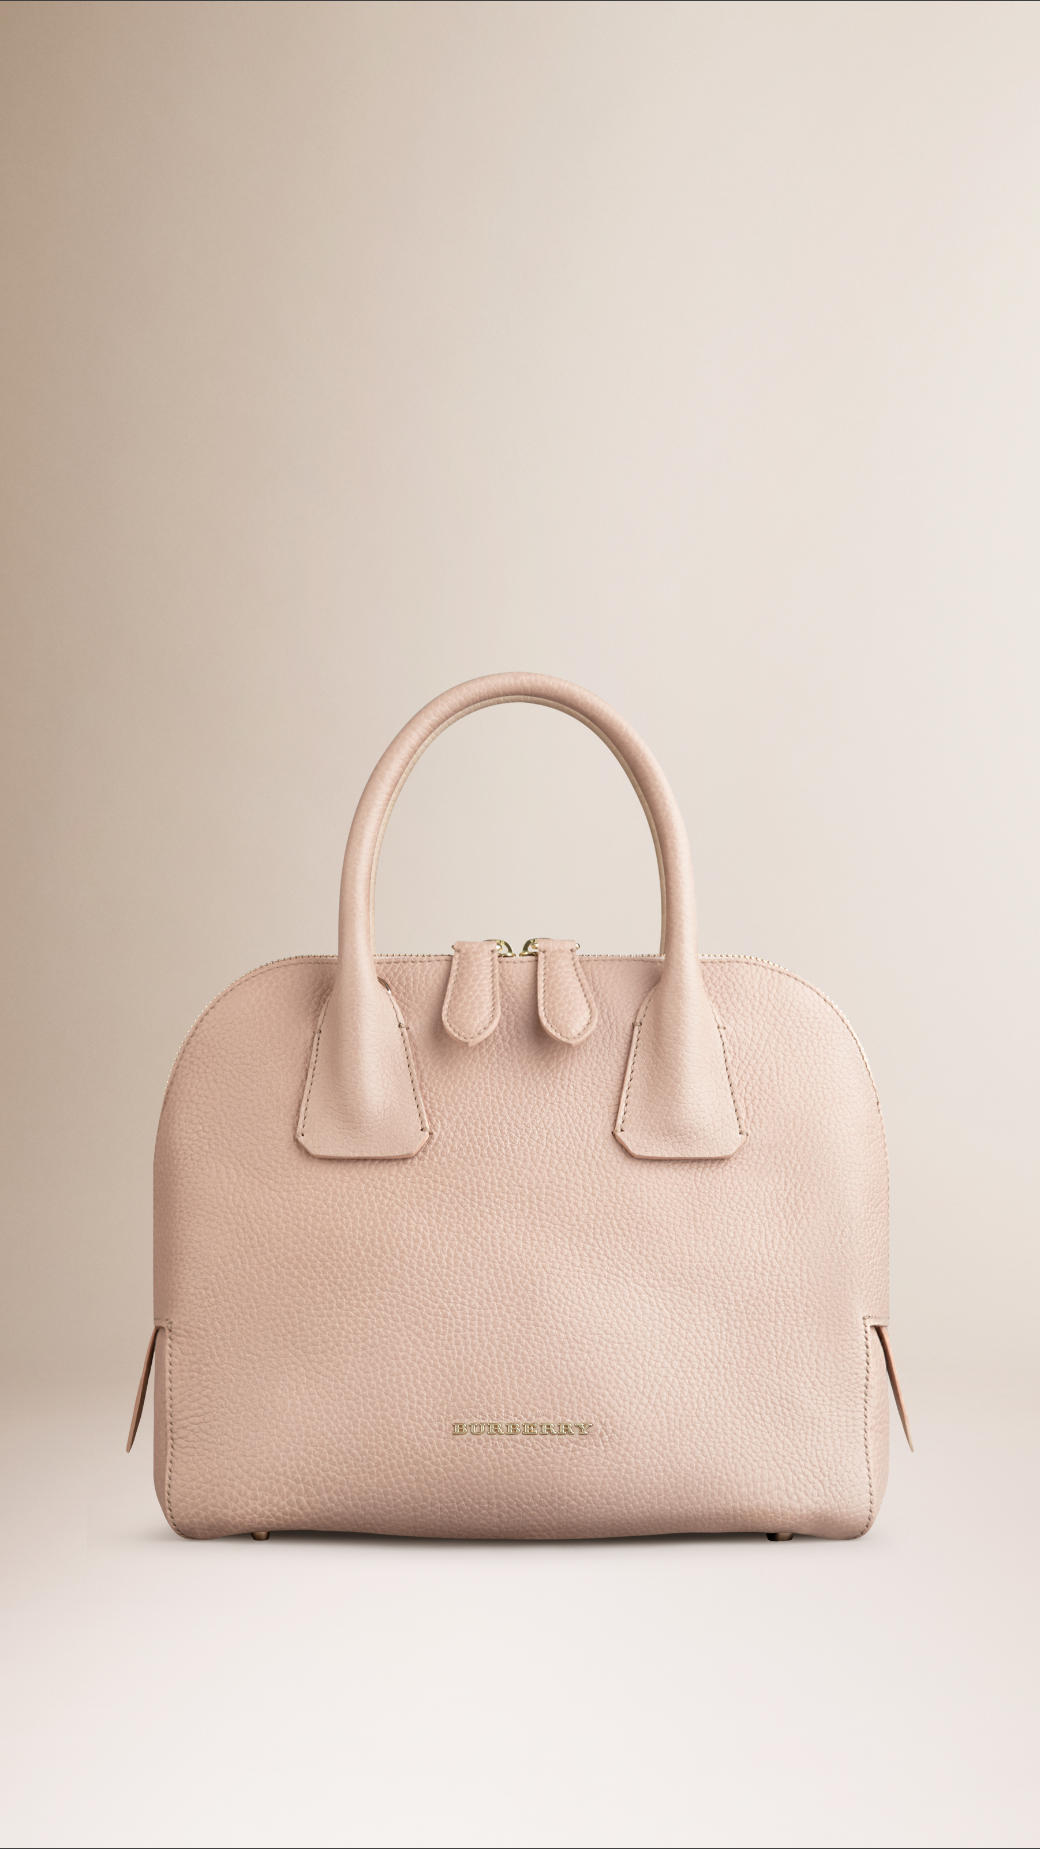 Lyst - Burberry Small Grainy Leather Bowling Bag in Pink b0ac8b934a3c6